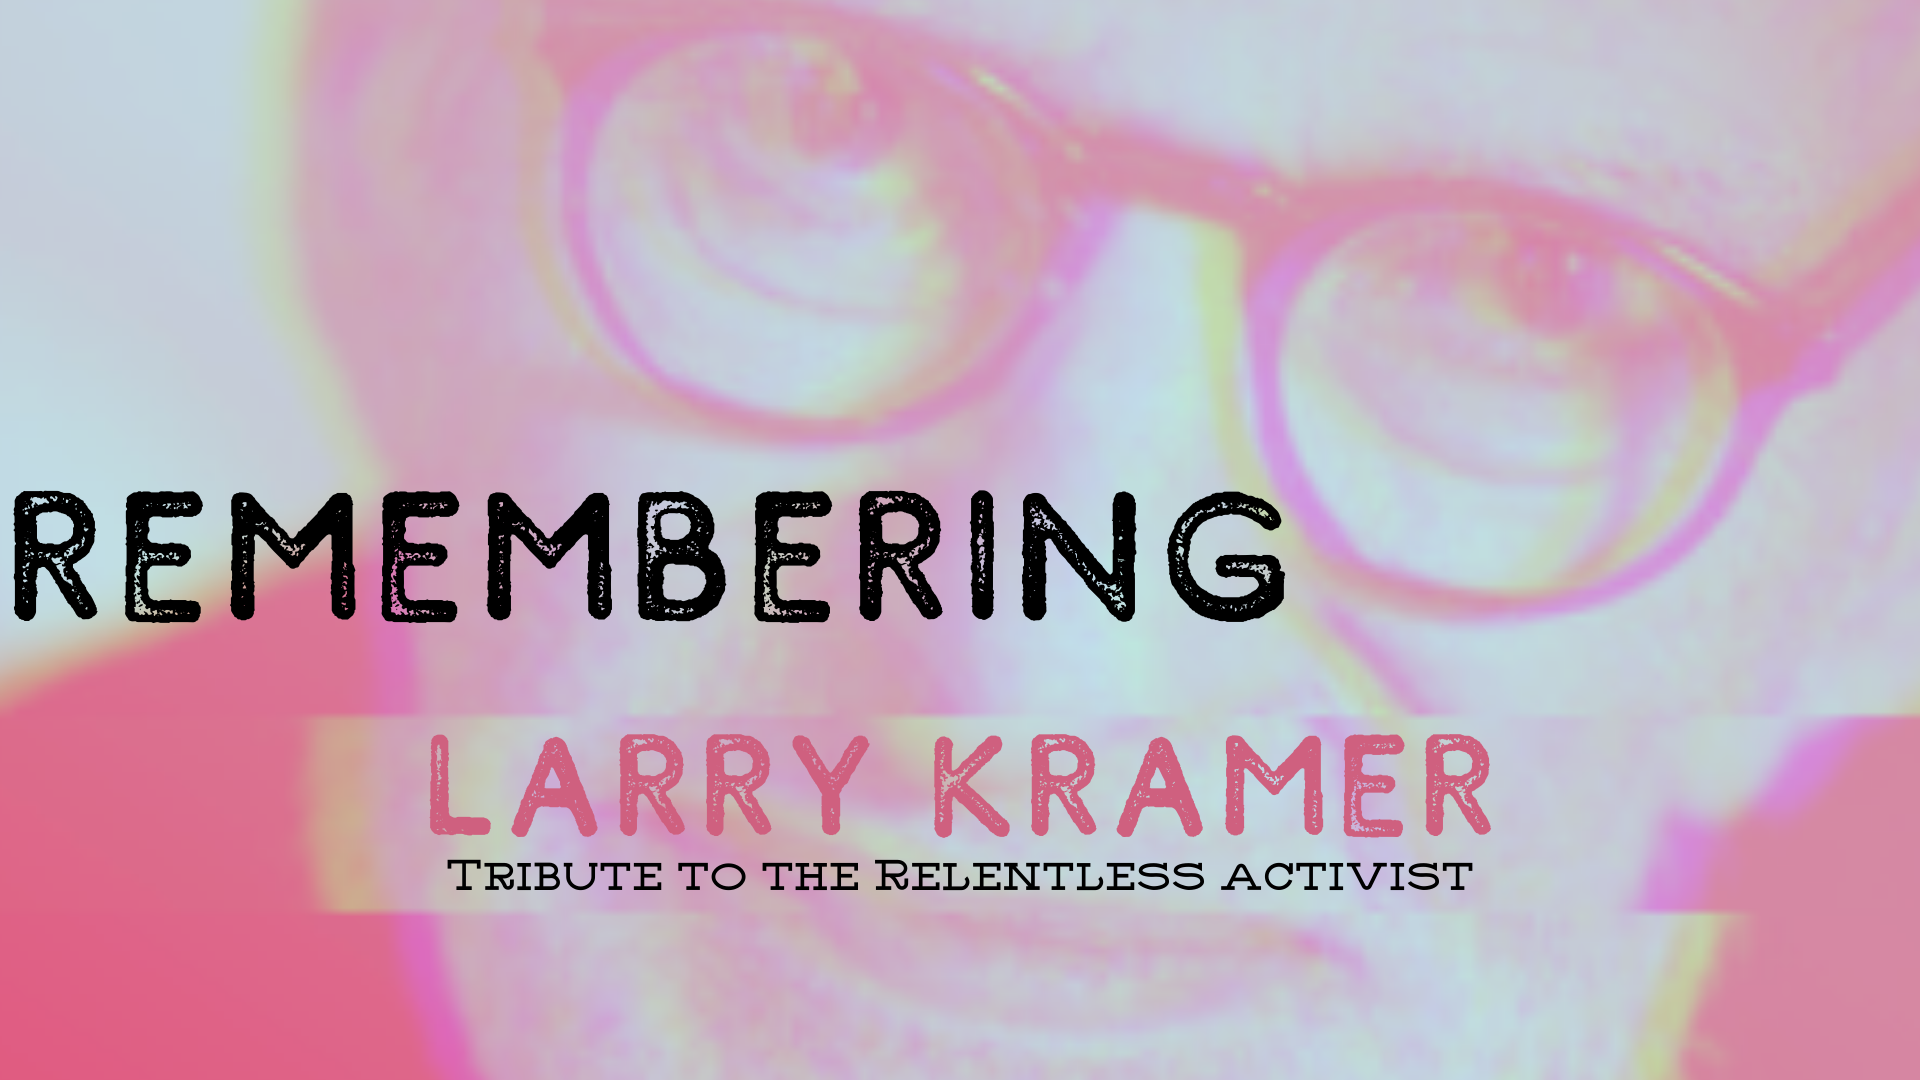 Tribute to Larry Kramer